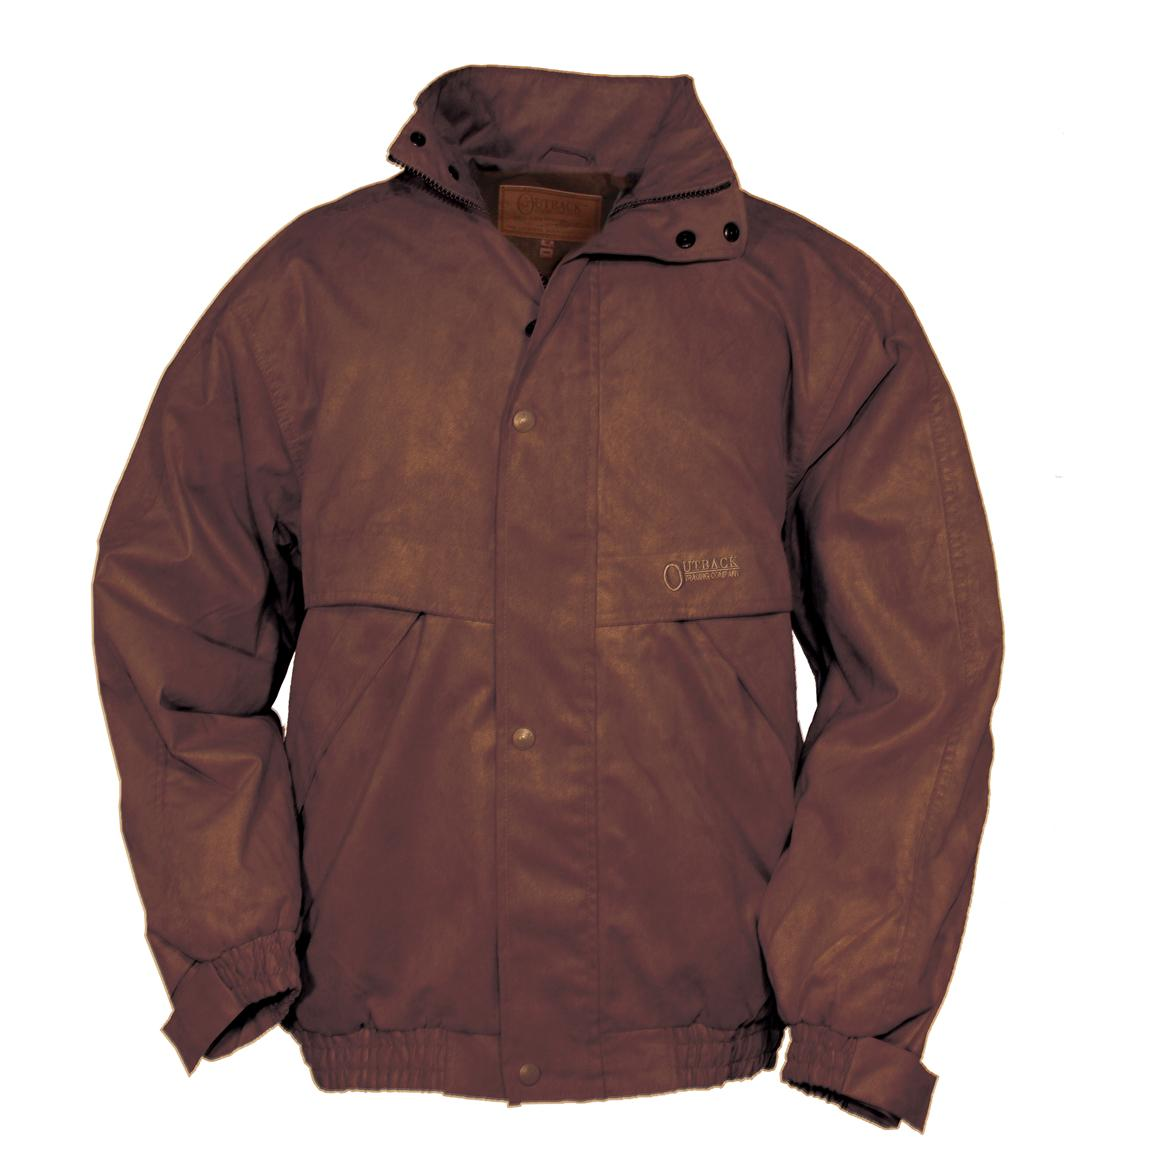 Men's Outback Trading Company® Rambler Jacket, Dark Brown